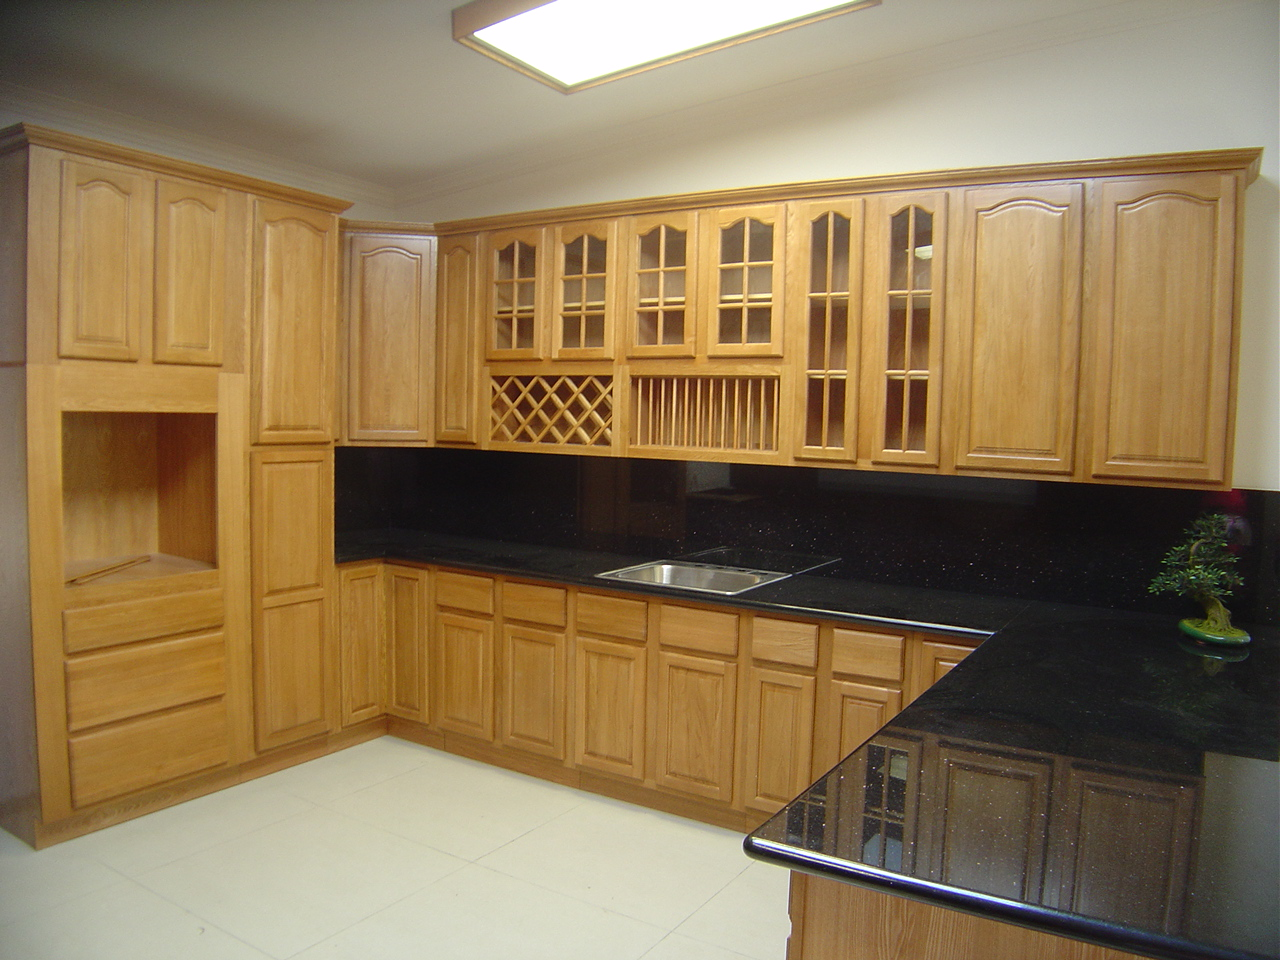 Special kitchen cabinet design and decor design interior for Remodeling kitchen cabinets ideas